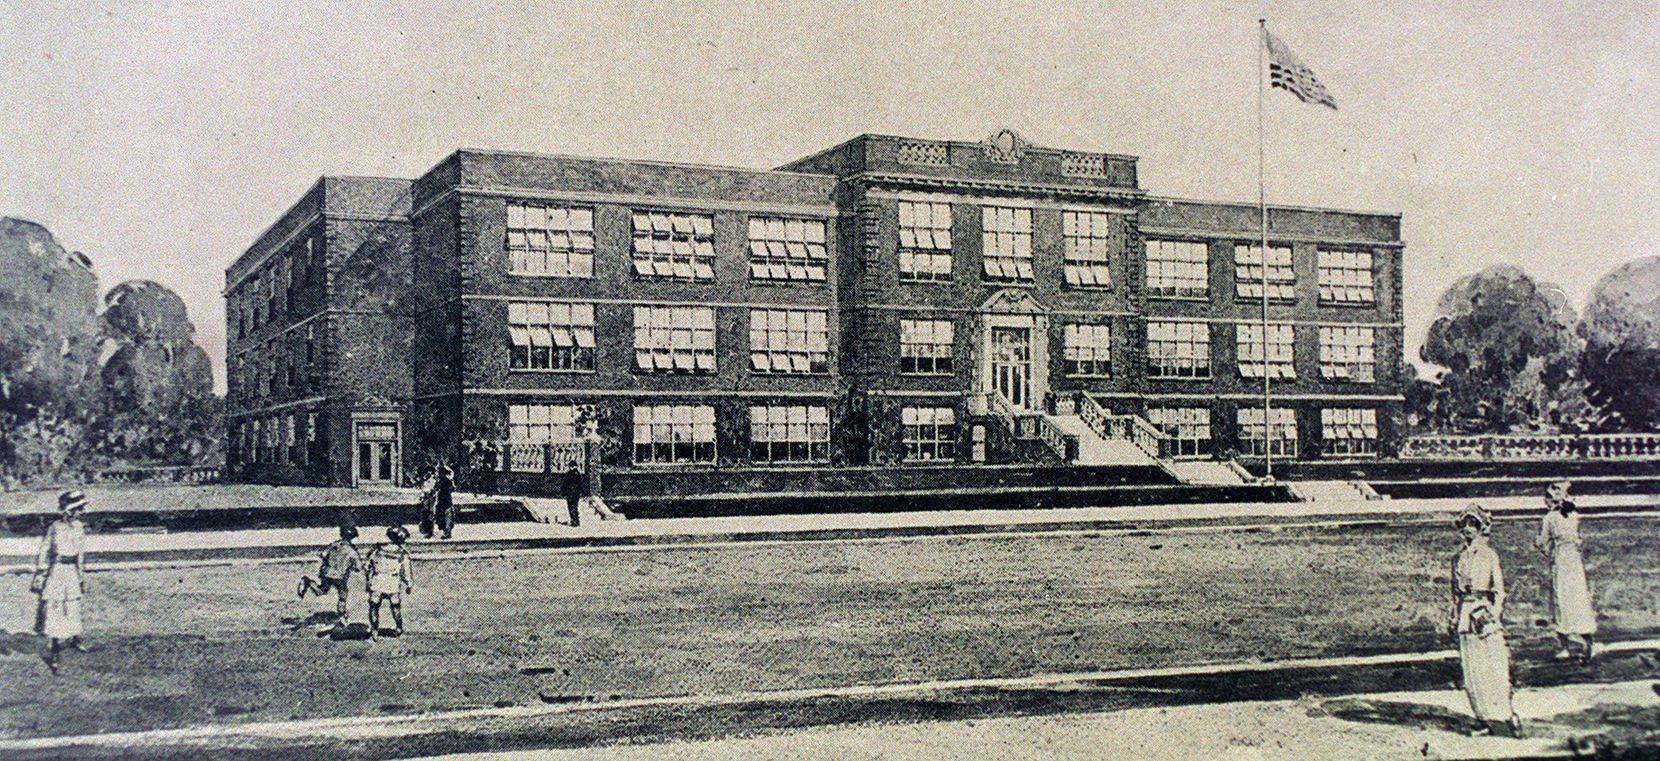 Drawing obtained from DISD vault of the new Oak Cliff High School, now W.H. Adamson High School, in 1916.